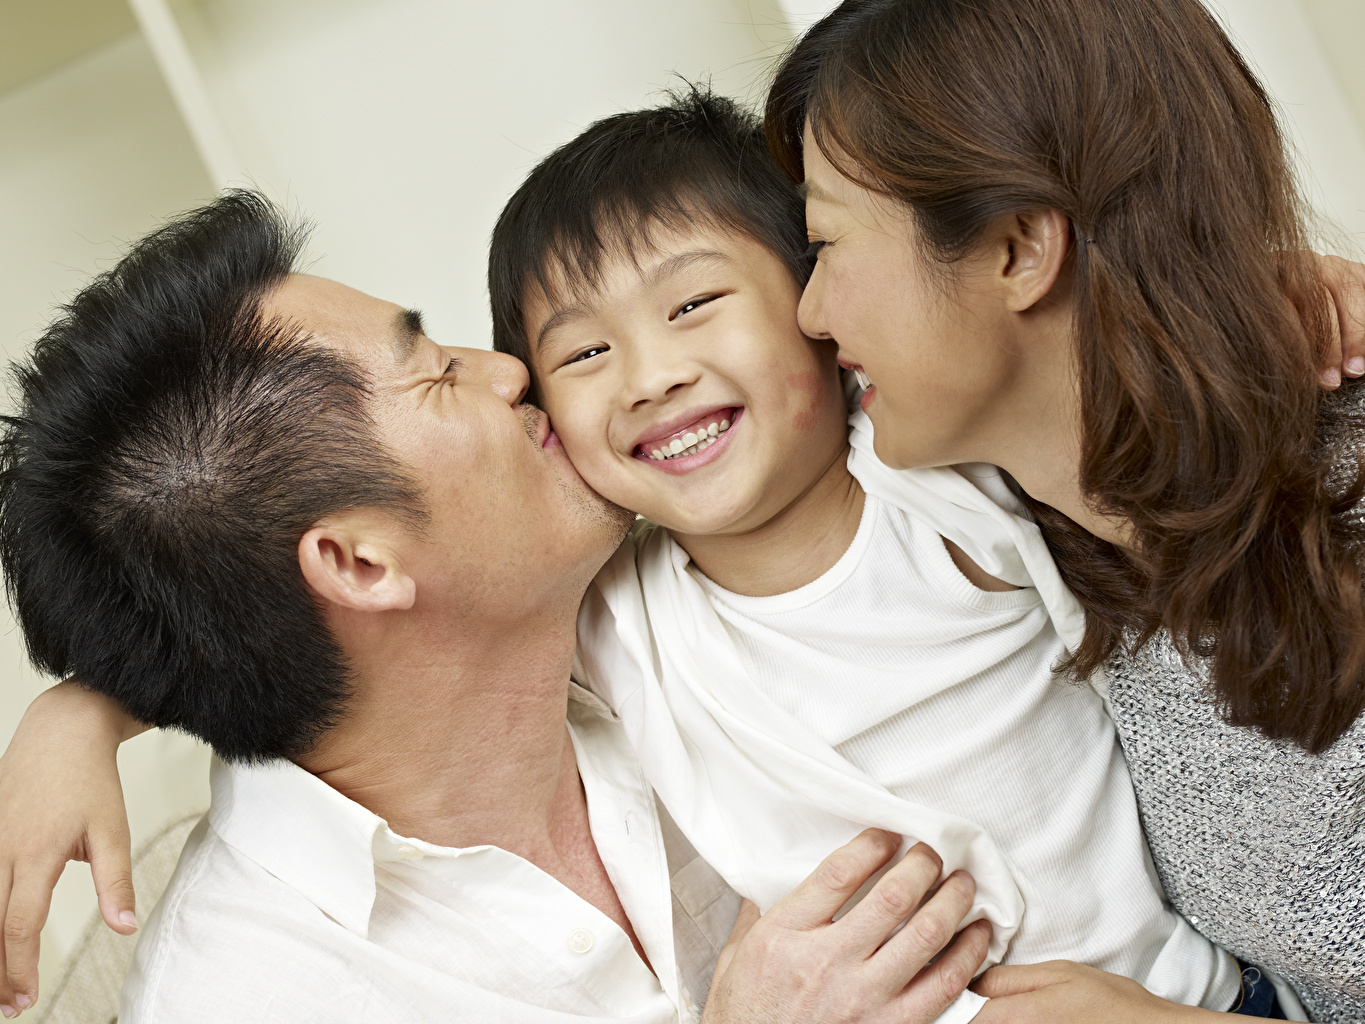 Wallpaper Family Brown haired Man Smile Mother child kisses young woman Three 3 Men Kiss kissing Children Girls female